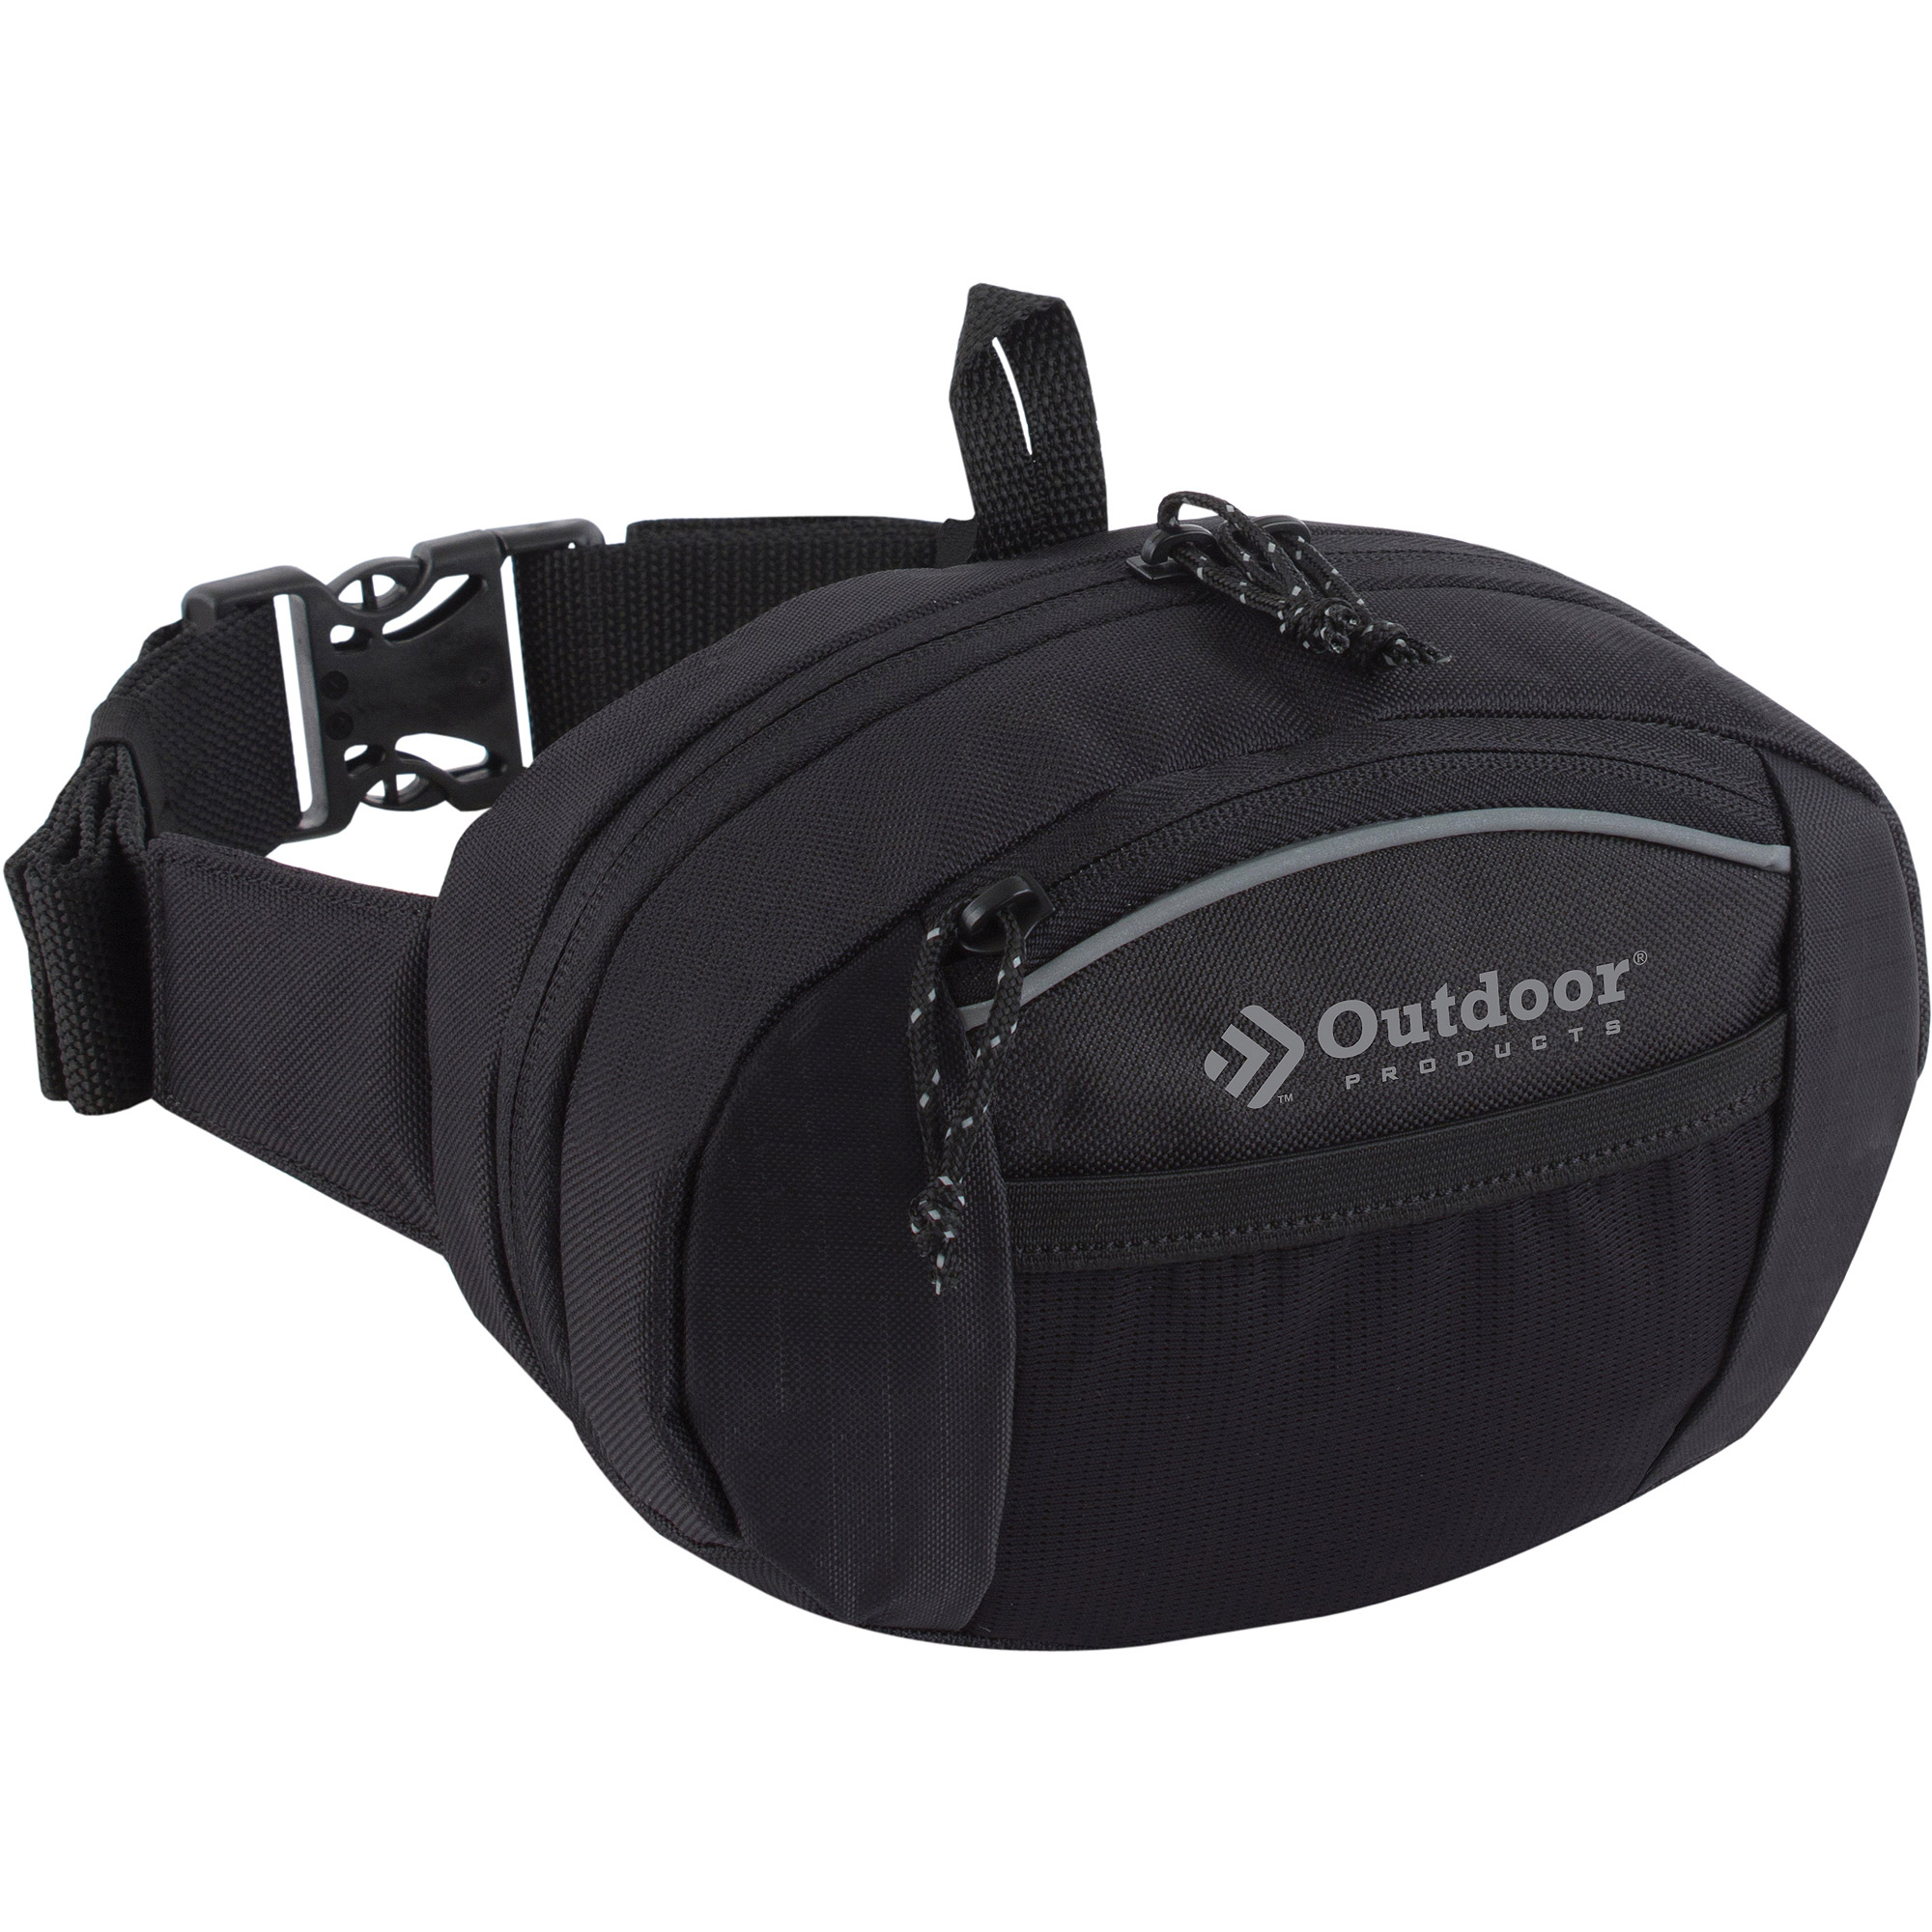 Outdoor Products Essential Waist Pack, Black